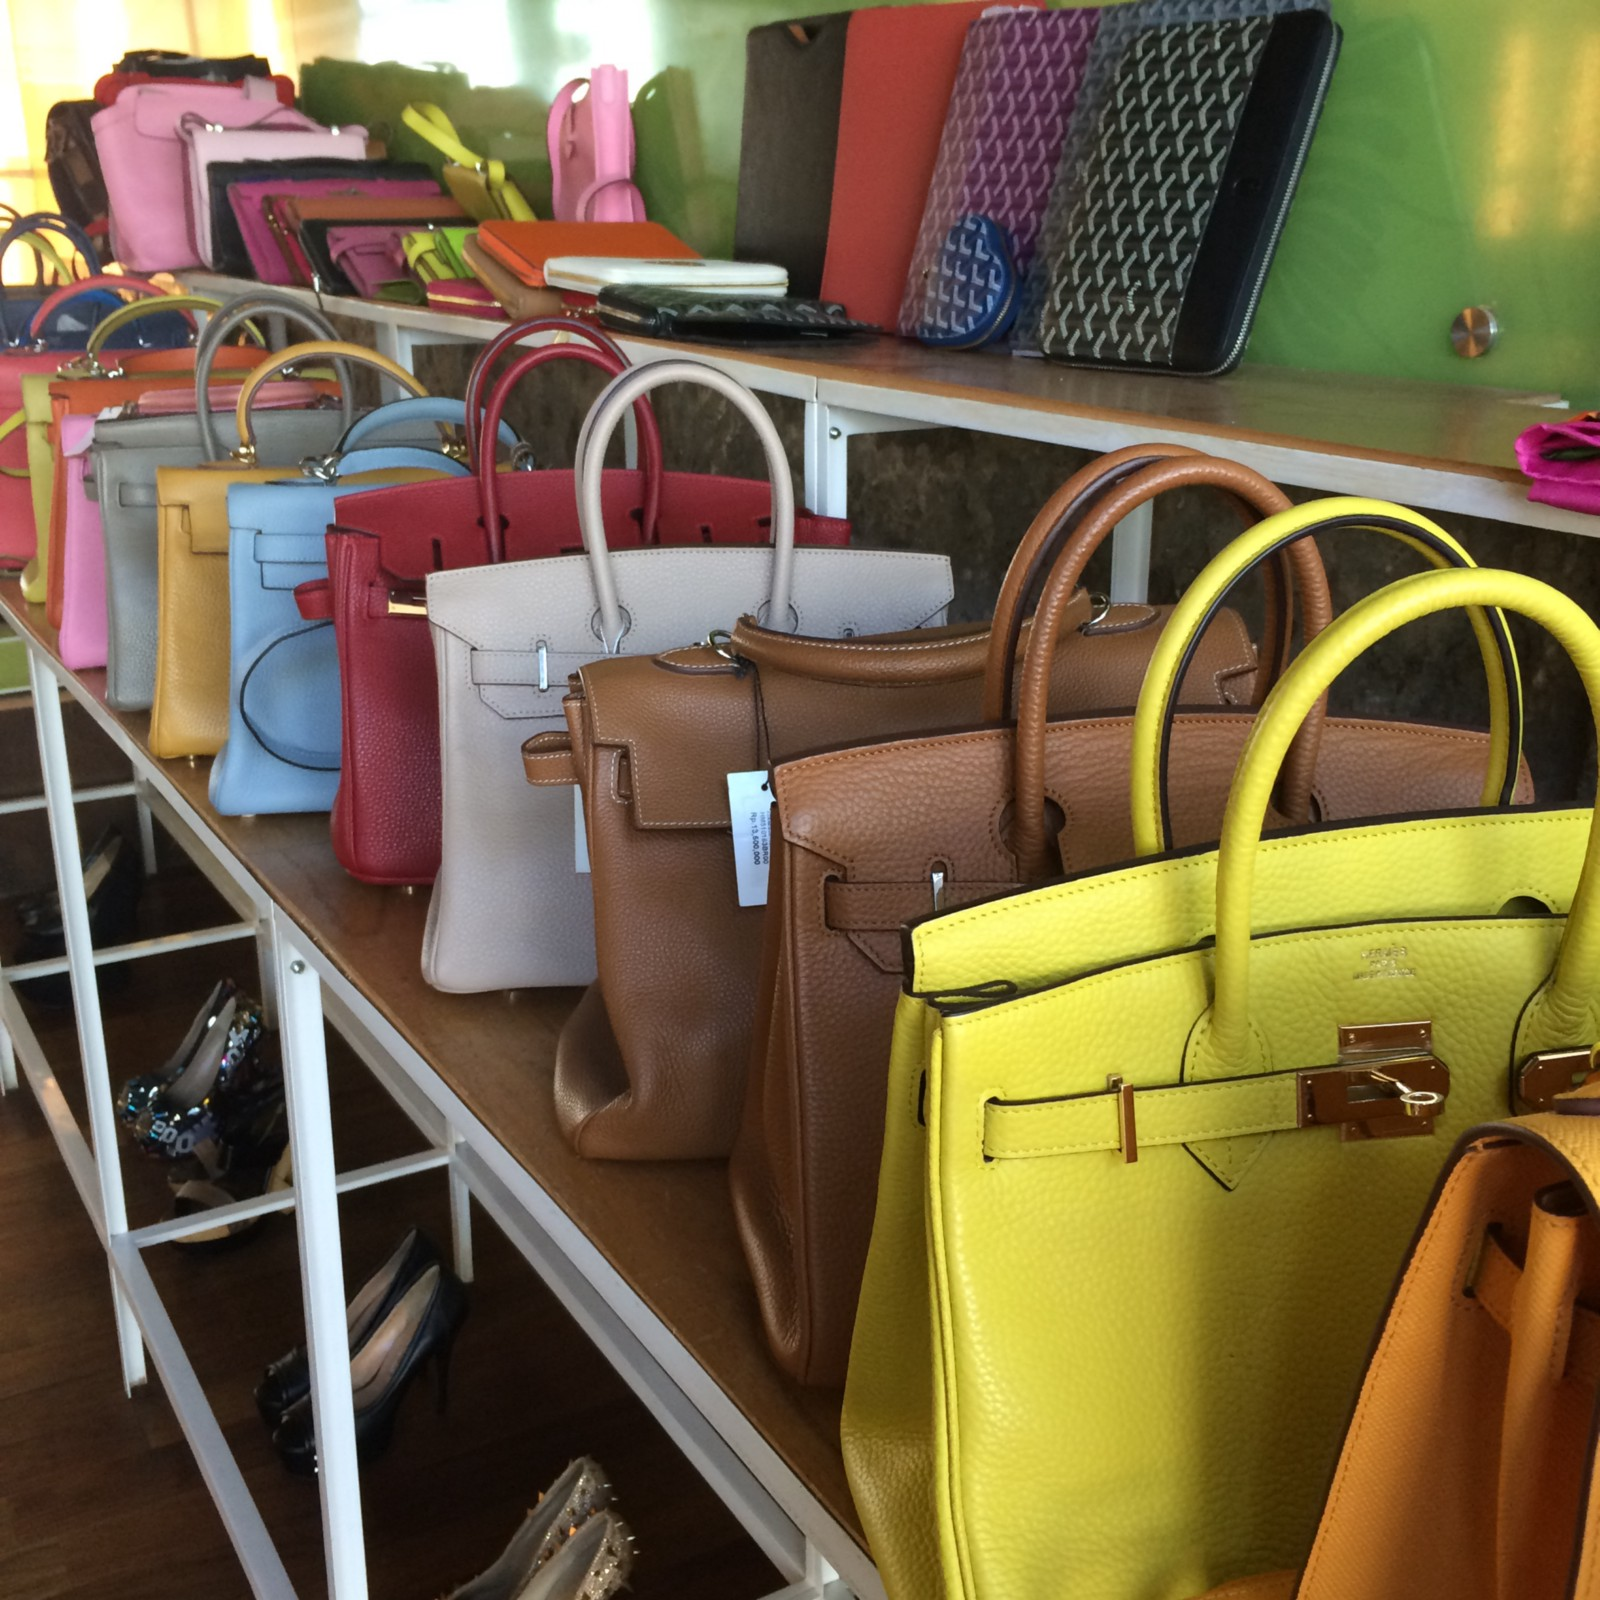 cf753576017 The Truth About Counterfeit Luxury Handbags – Becca Risa Luna – Medium